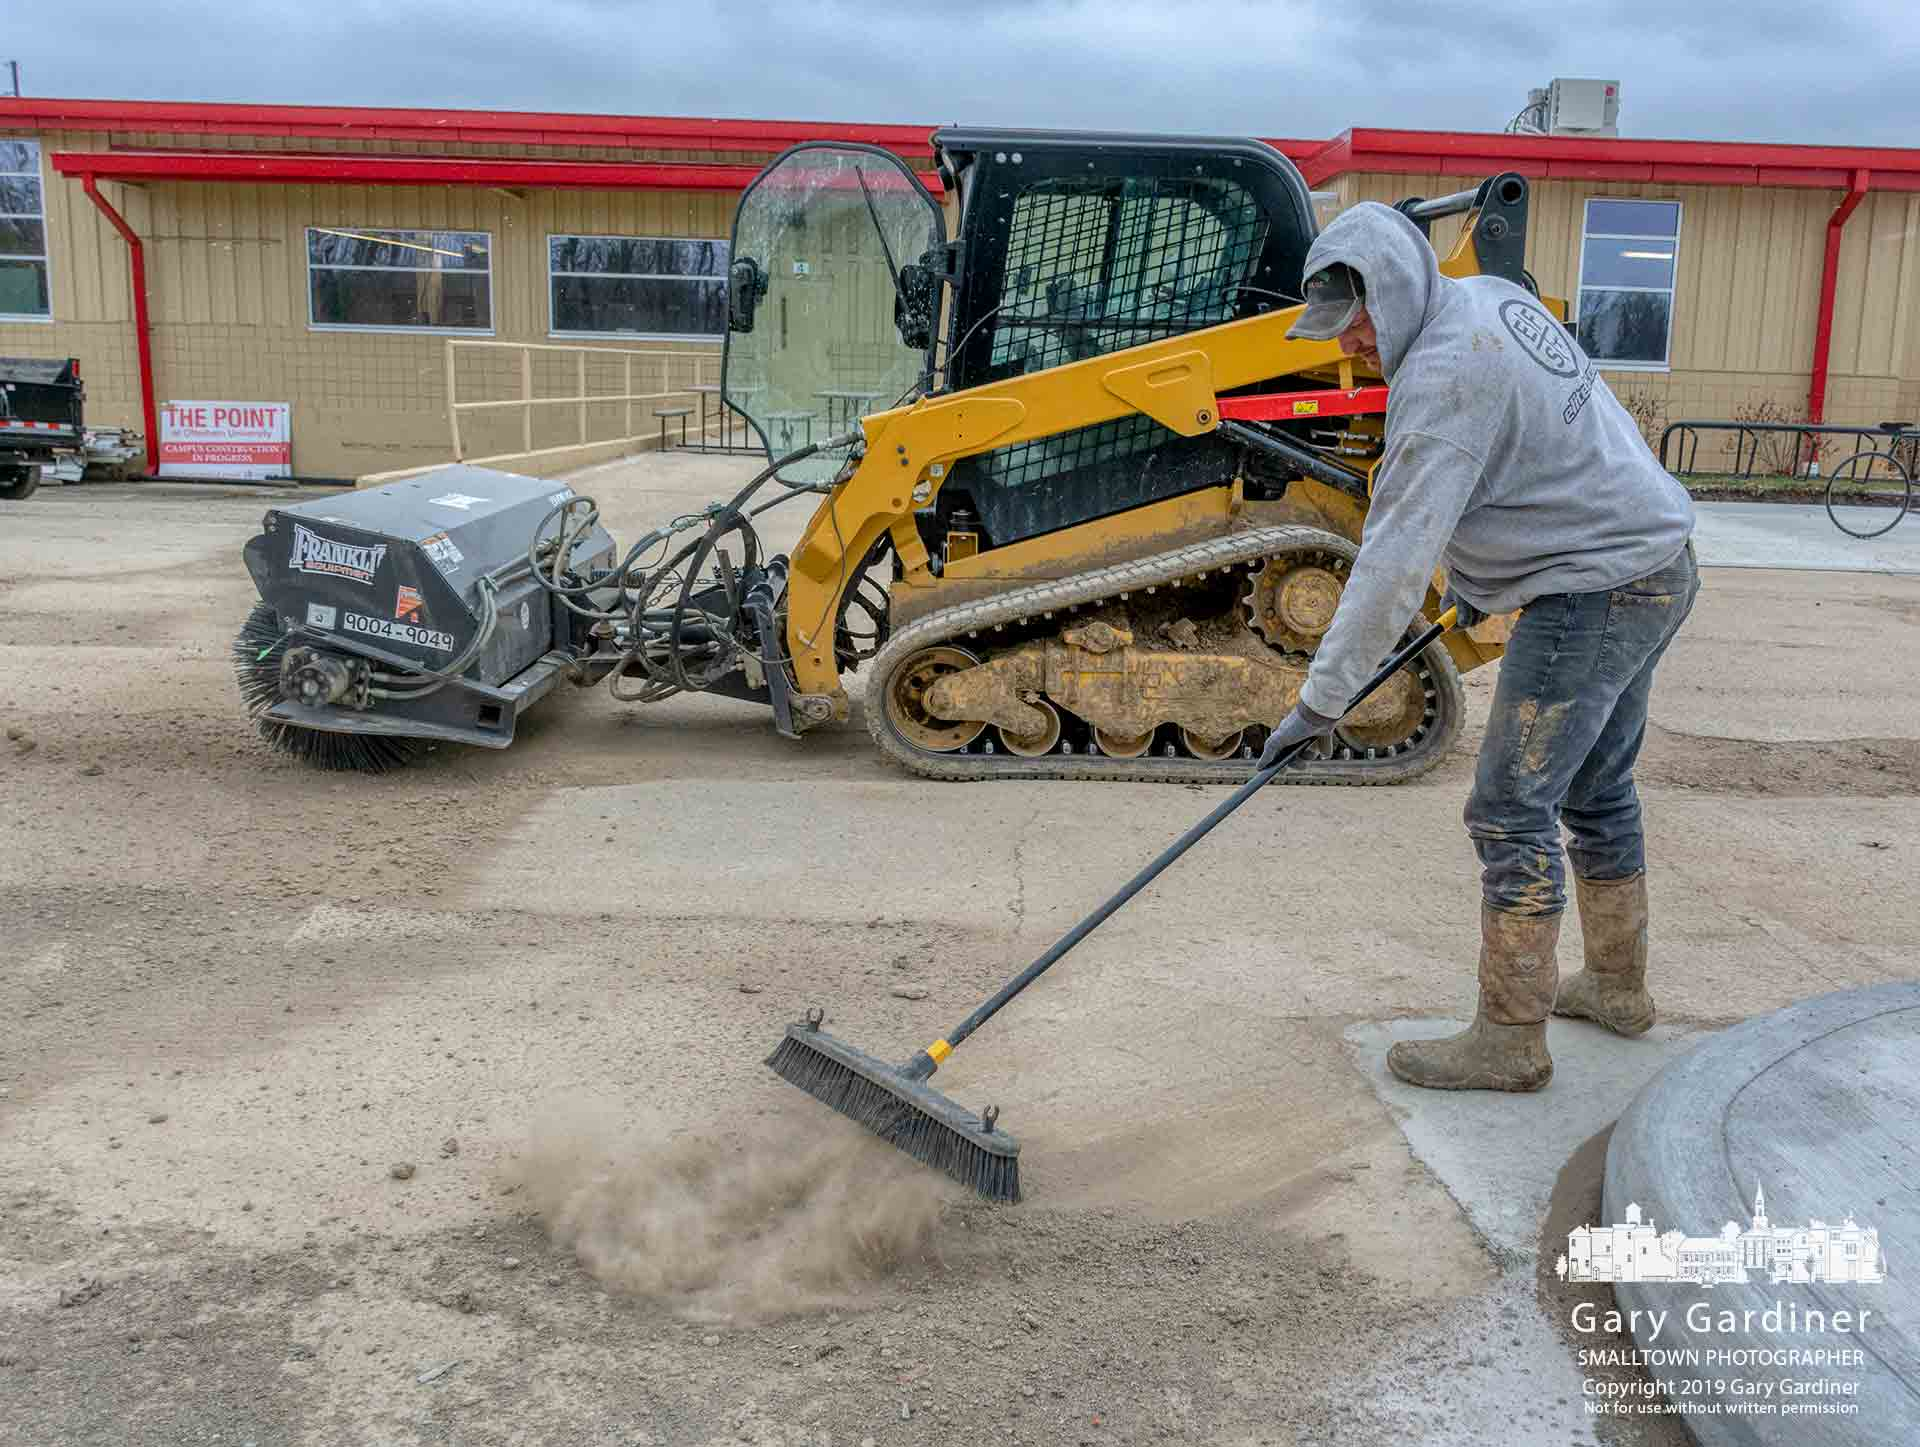 A construction worker stepped away from his powered sweeper and took to a push broom to clear debris from the edges of the loading dock section of the recently upgraded section of the parking lot and walkways at The Point on the Otterbein University. My Final Photo for Jan. 9, 2019.